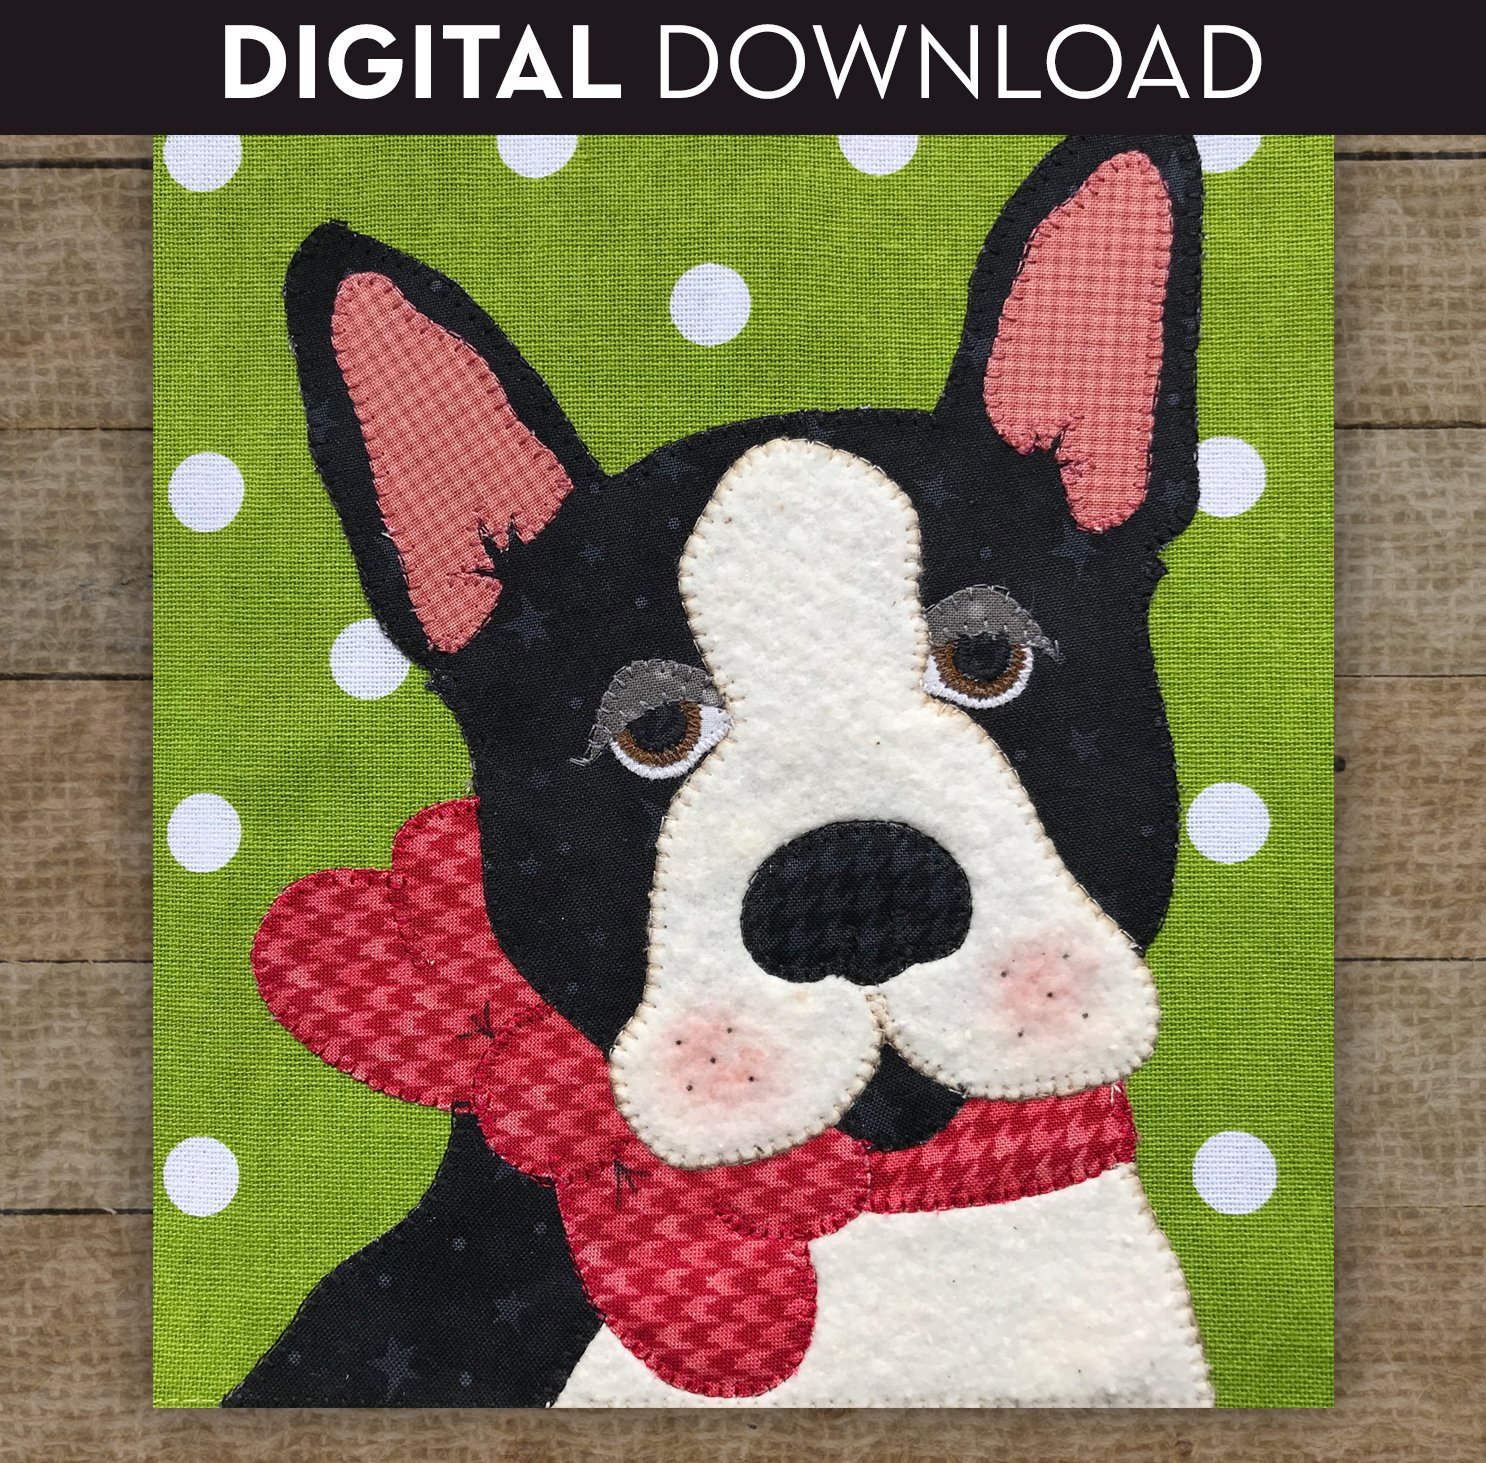 Boston Terrier - Download